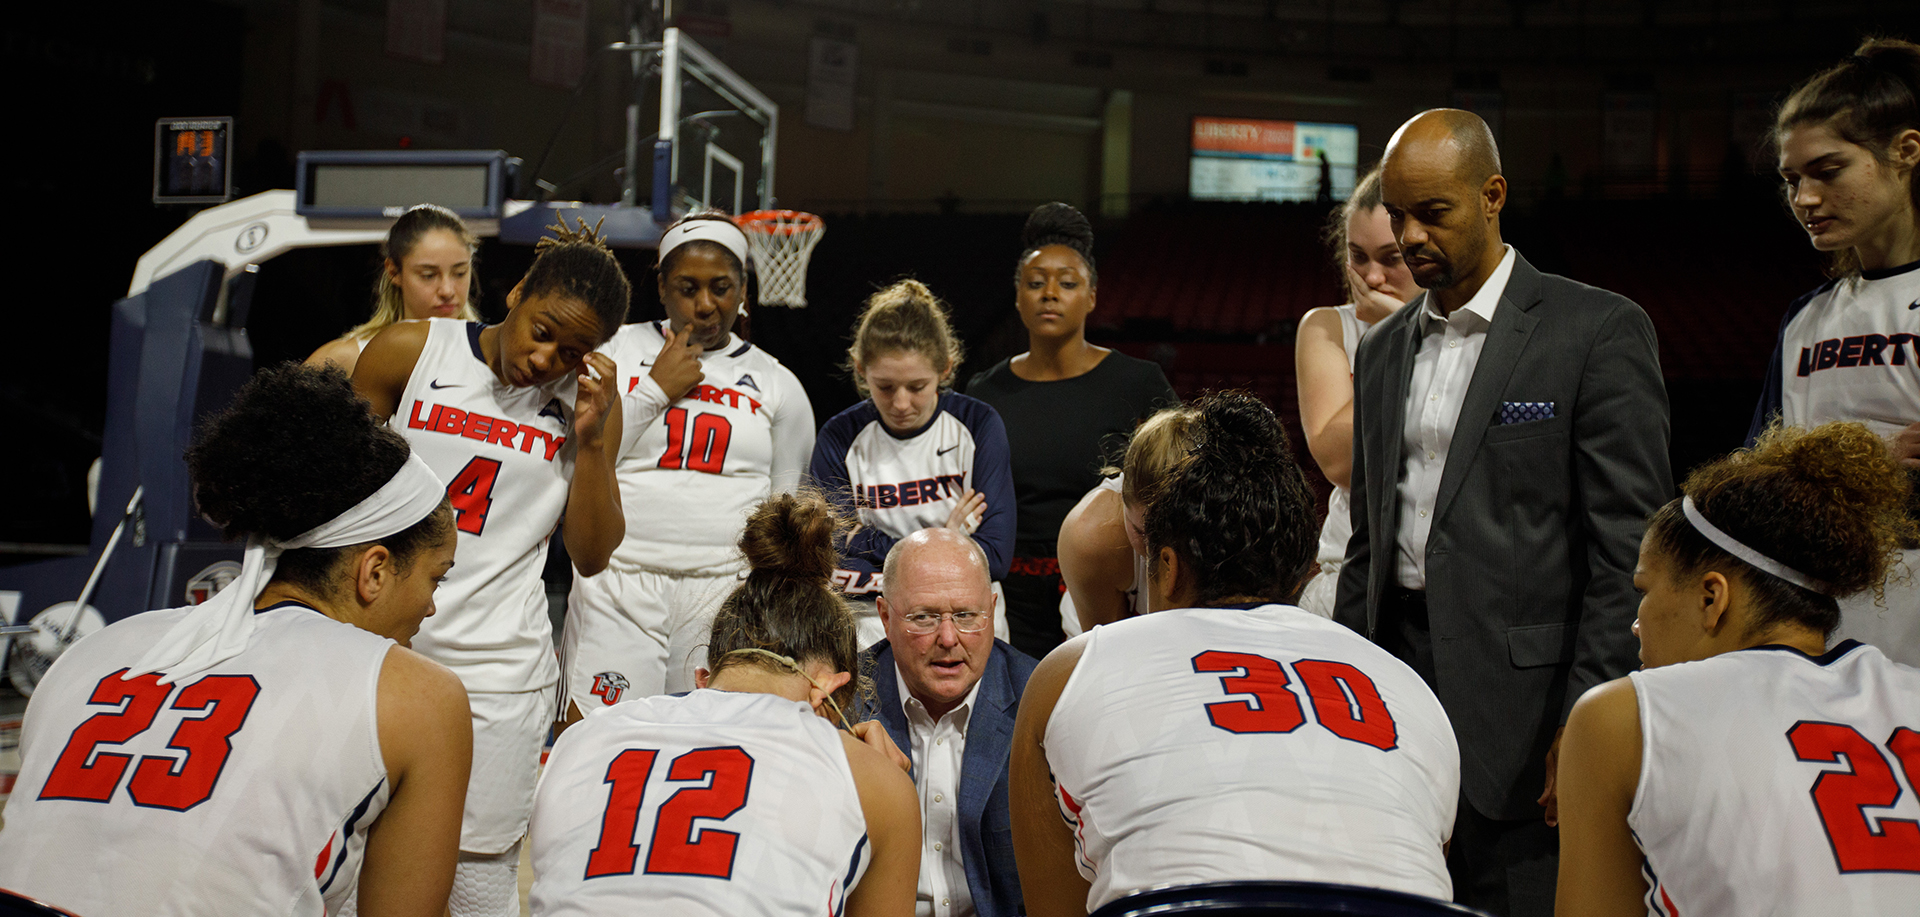 The Lady Flames will return to the court Saturday at 2 p.m., when they play at North Carolina Central.